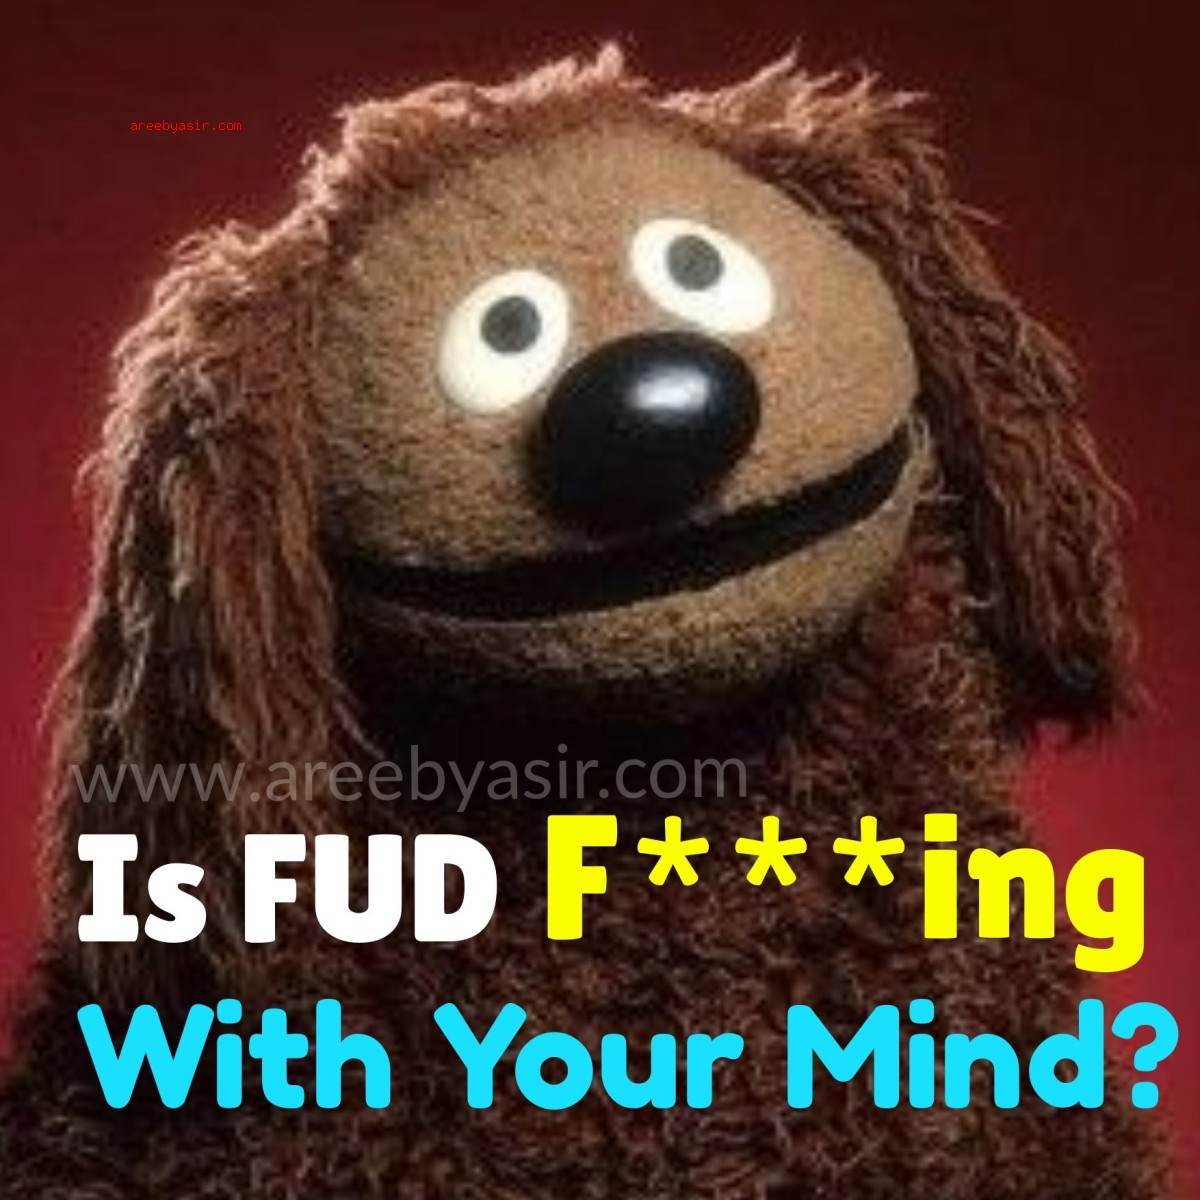 What the FUD (Fear Uncertainty and Doubt)